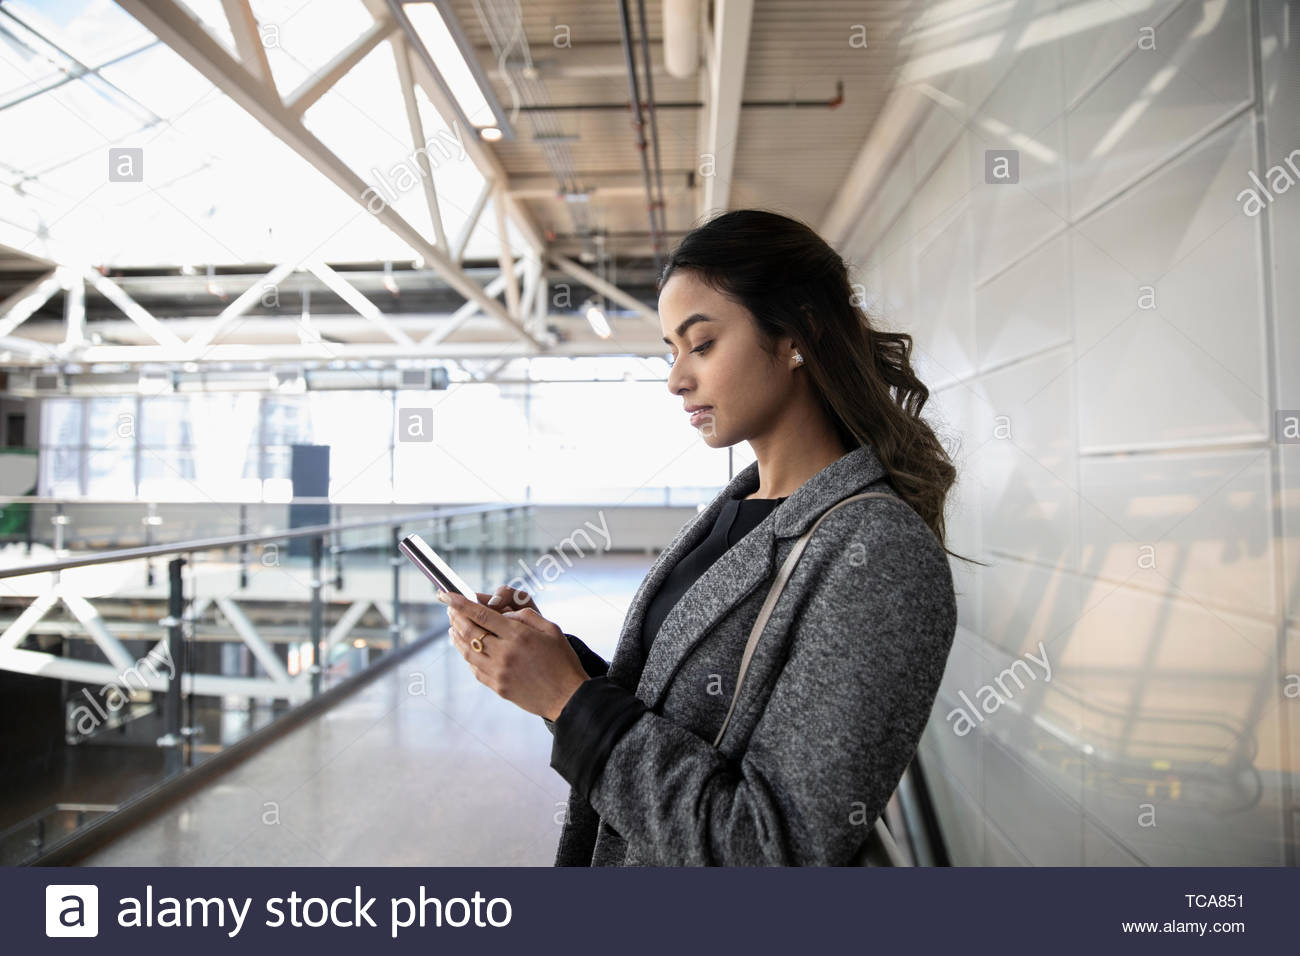 Young businesswoman using smart phone Photo Stock